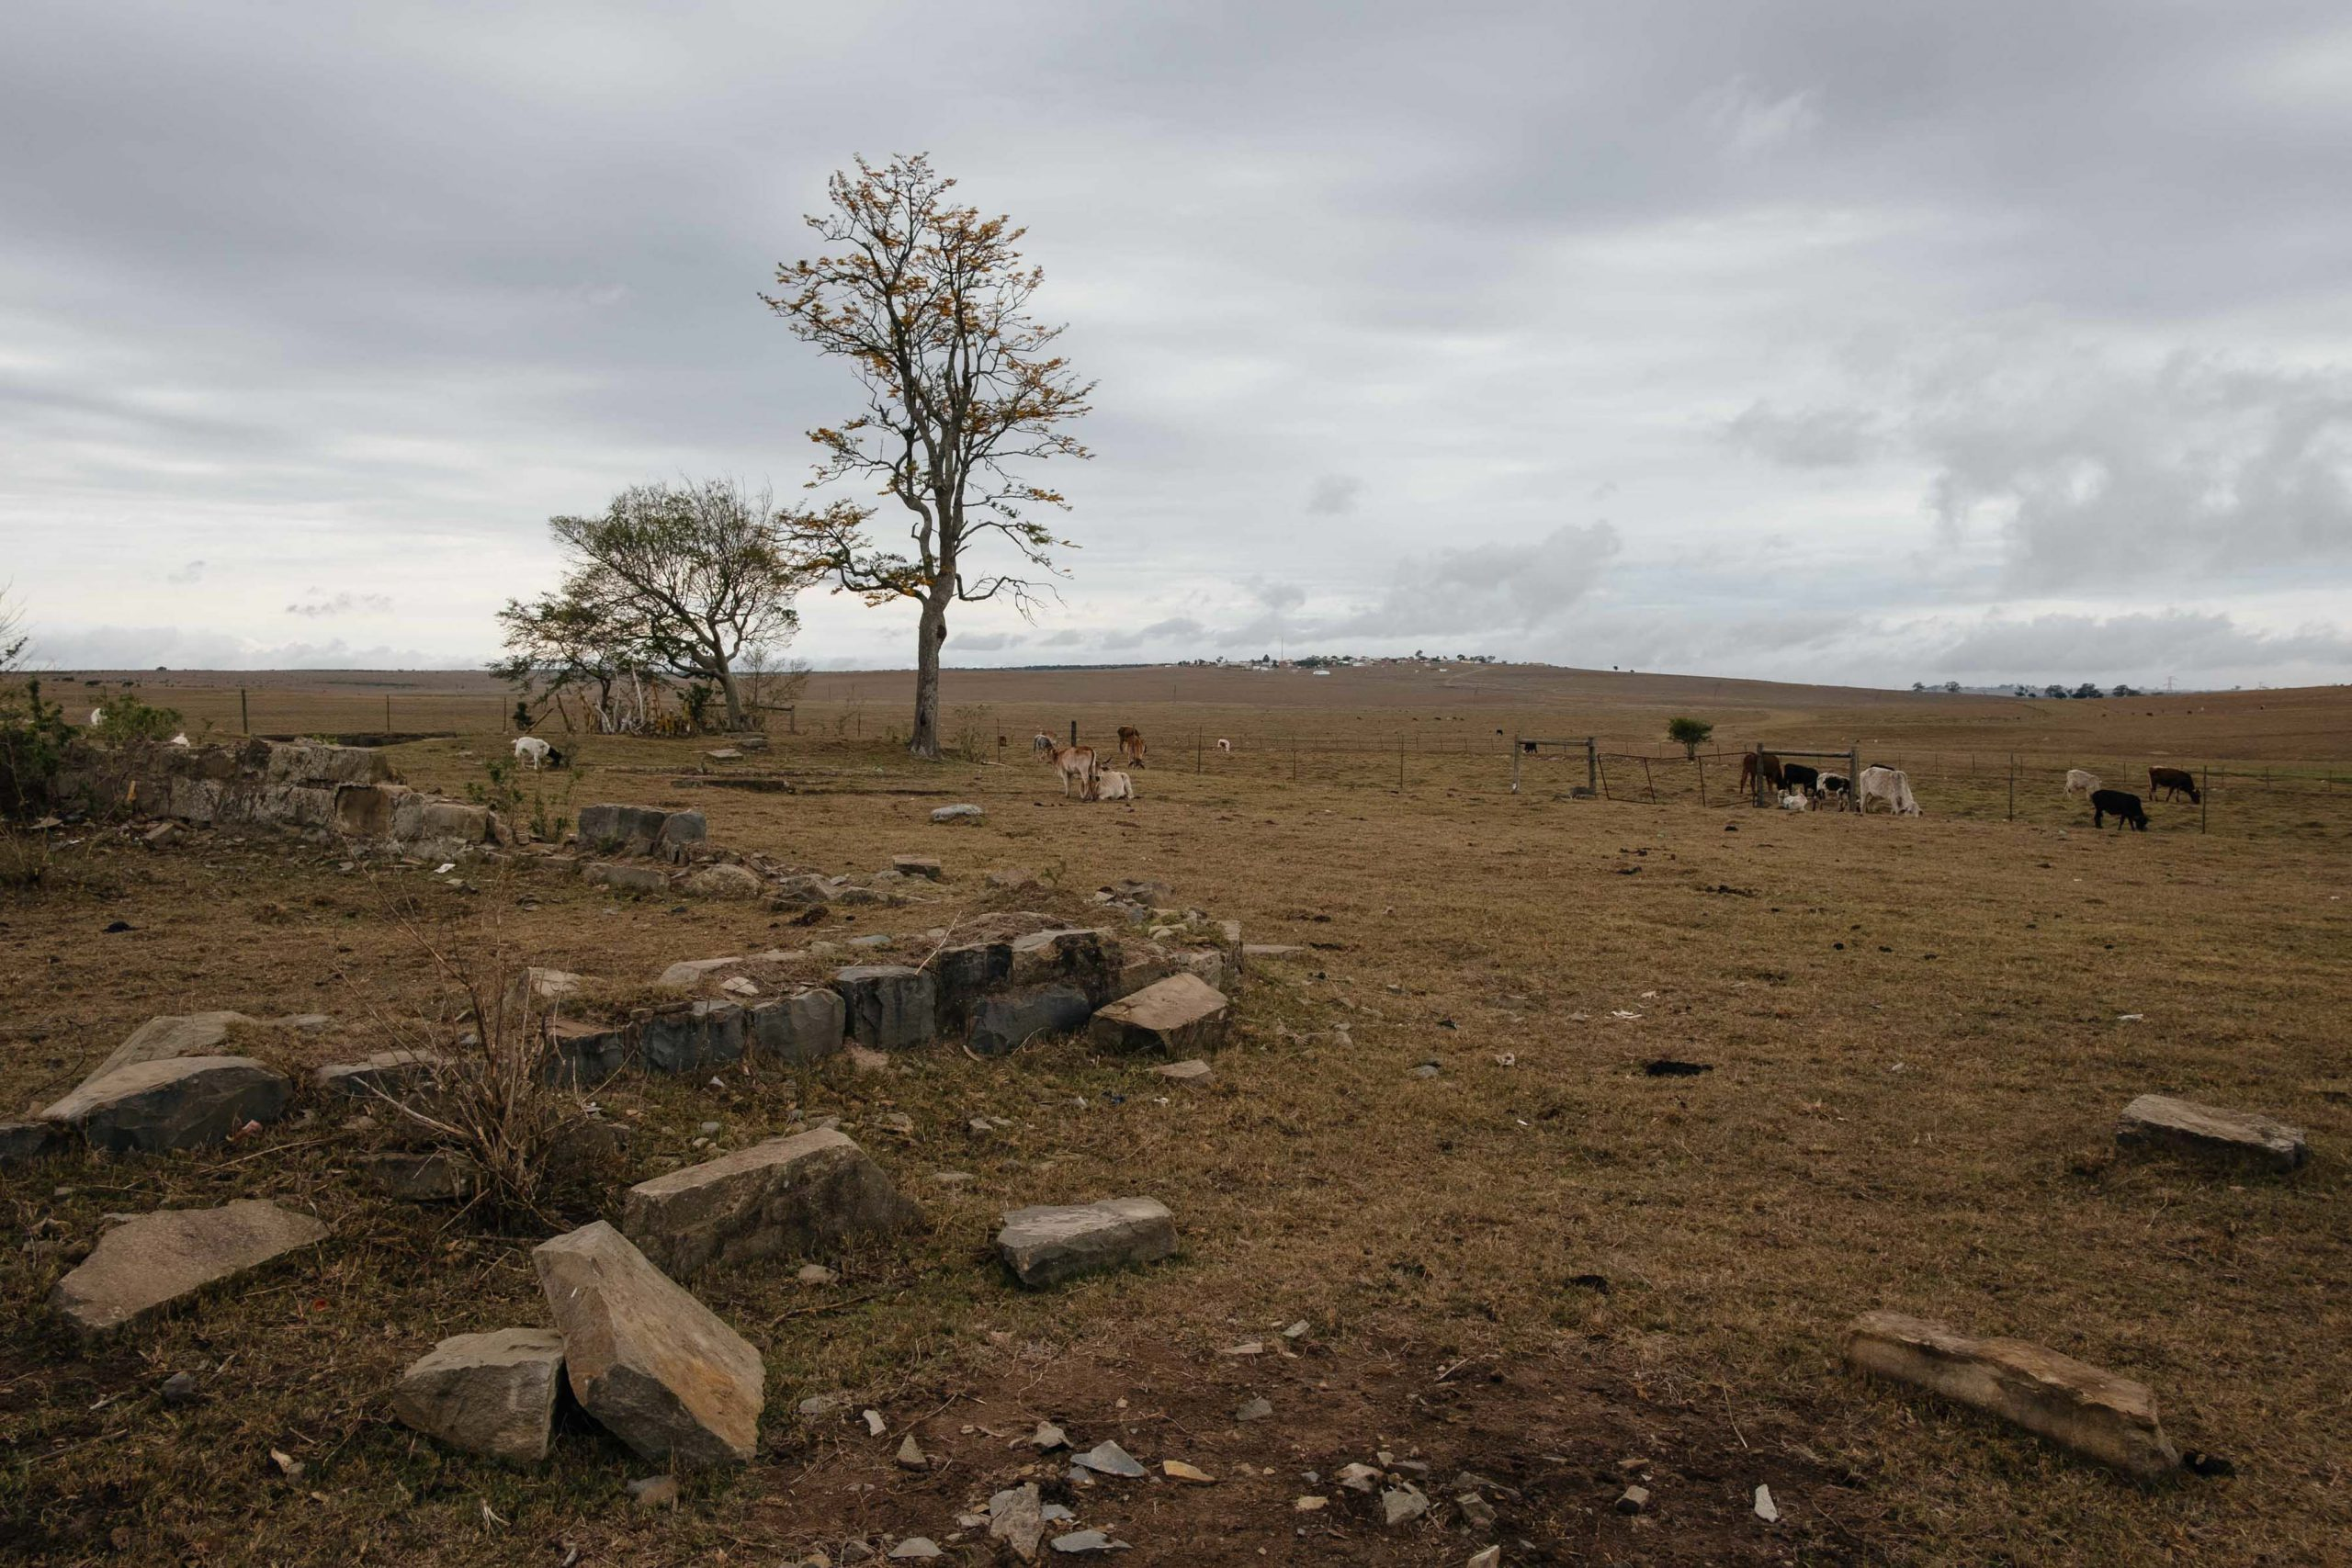 10 November 2019: Extended drought coupled with heavy grazing have led to the severe degradation of the Eastern Cape's grasslands, which will have long-term consequences for the livelihoods of rural people in the region.